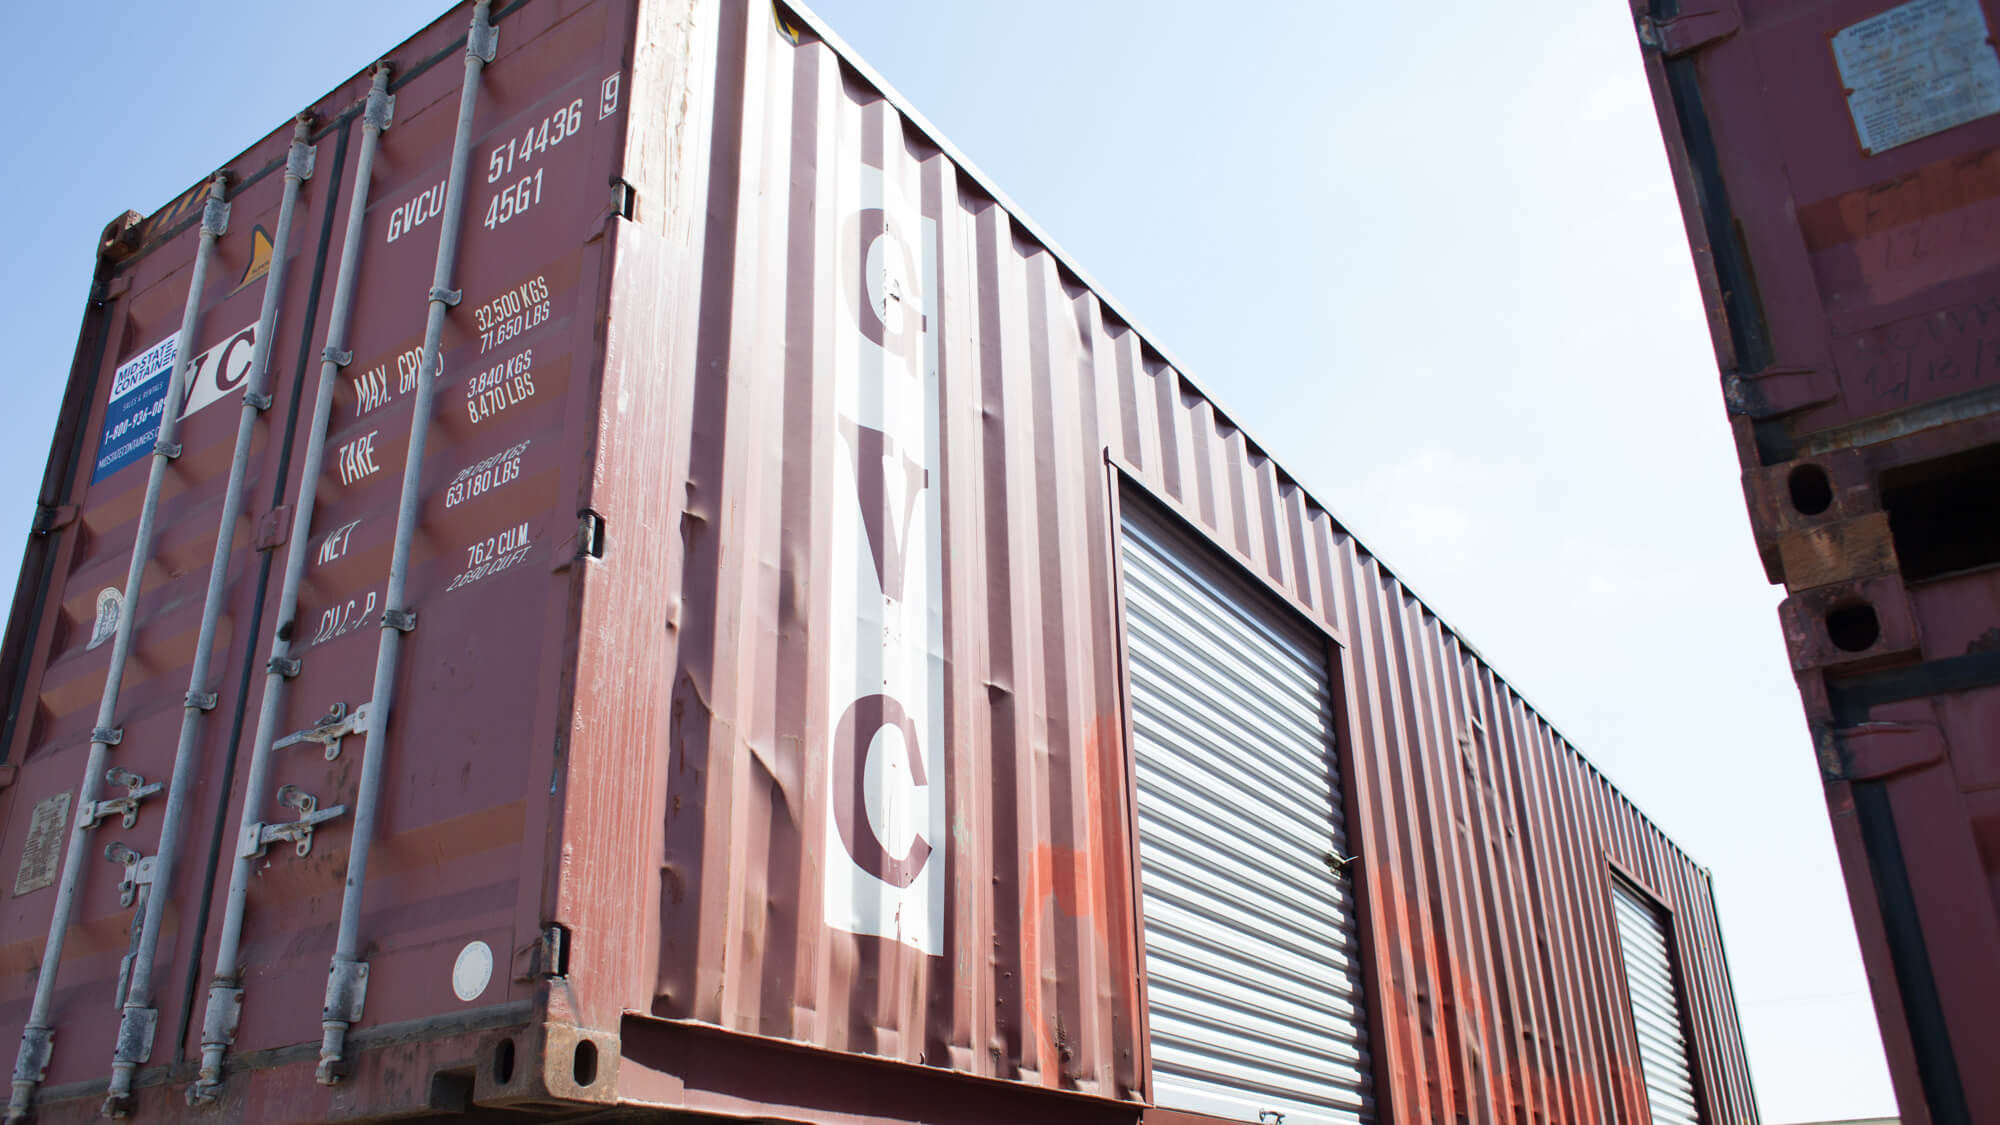 40' shipping container roll doors.jpg